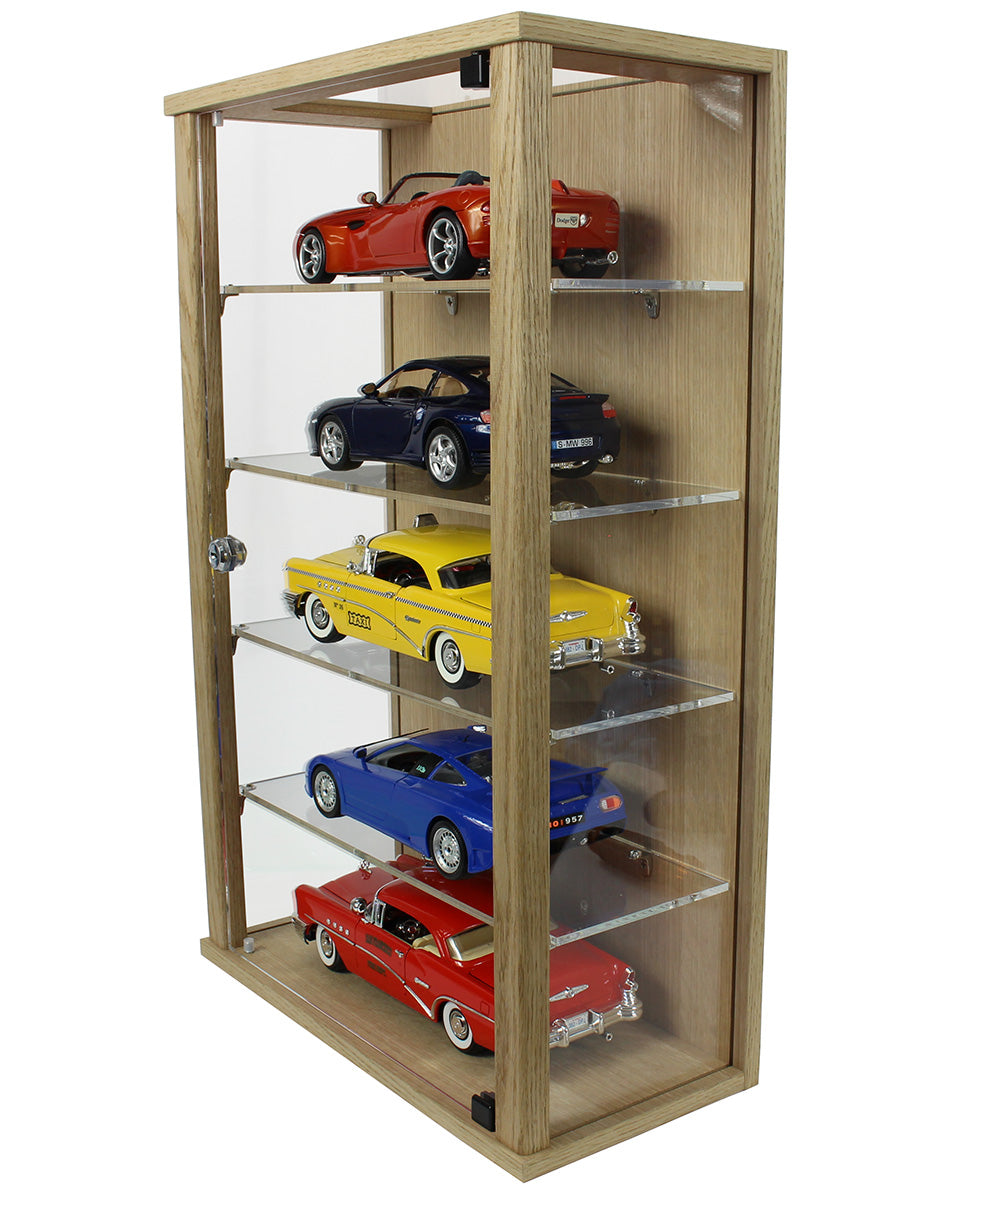 Lockable Display Case for 1:18 Scale Model Cars- F1 or Standard